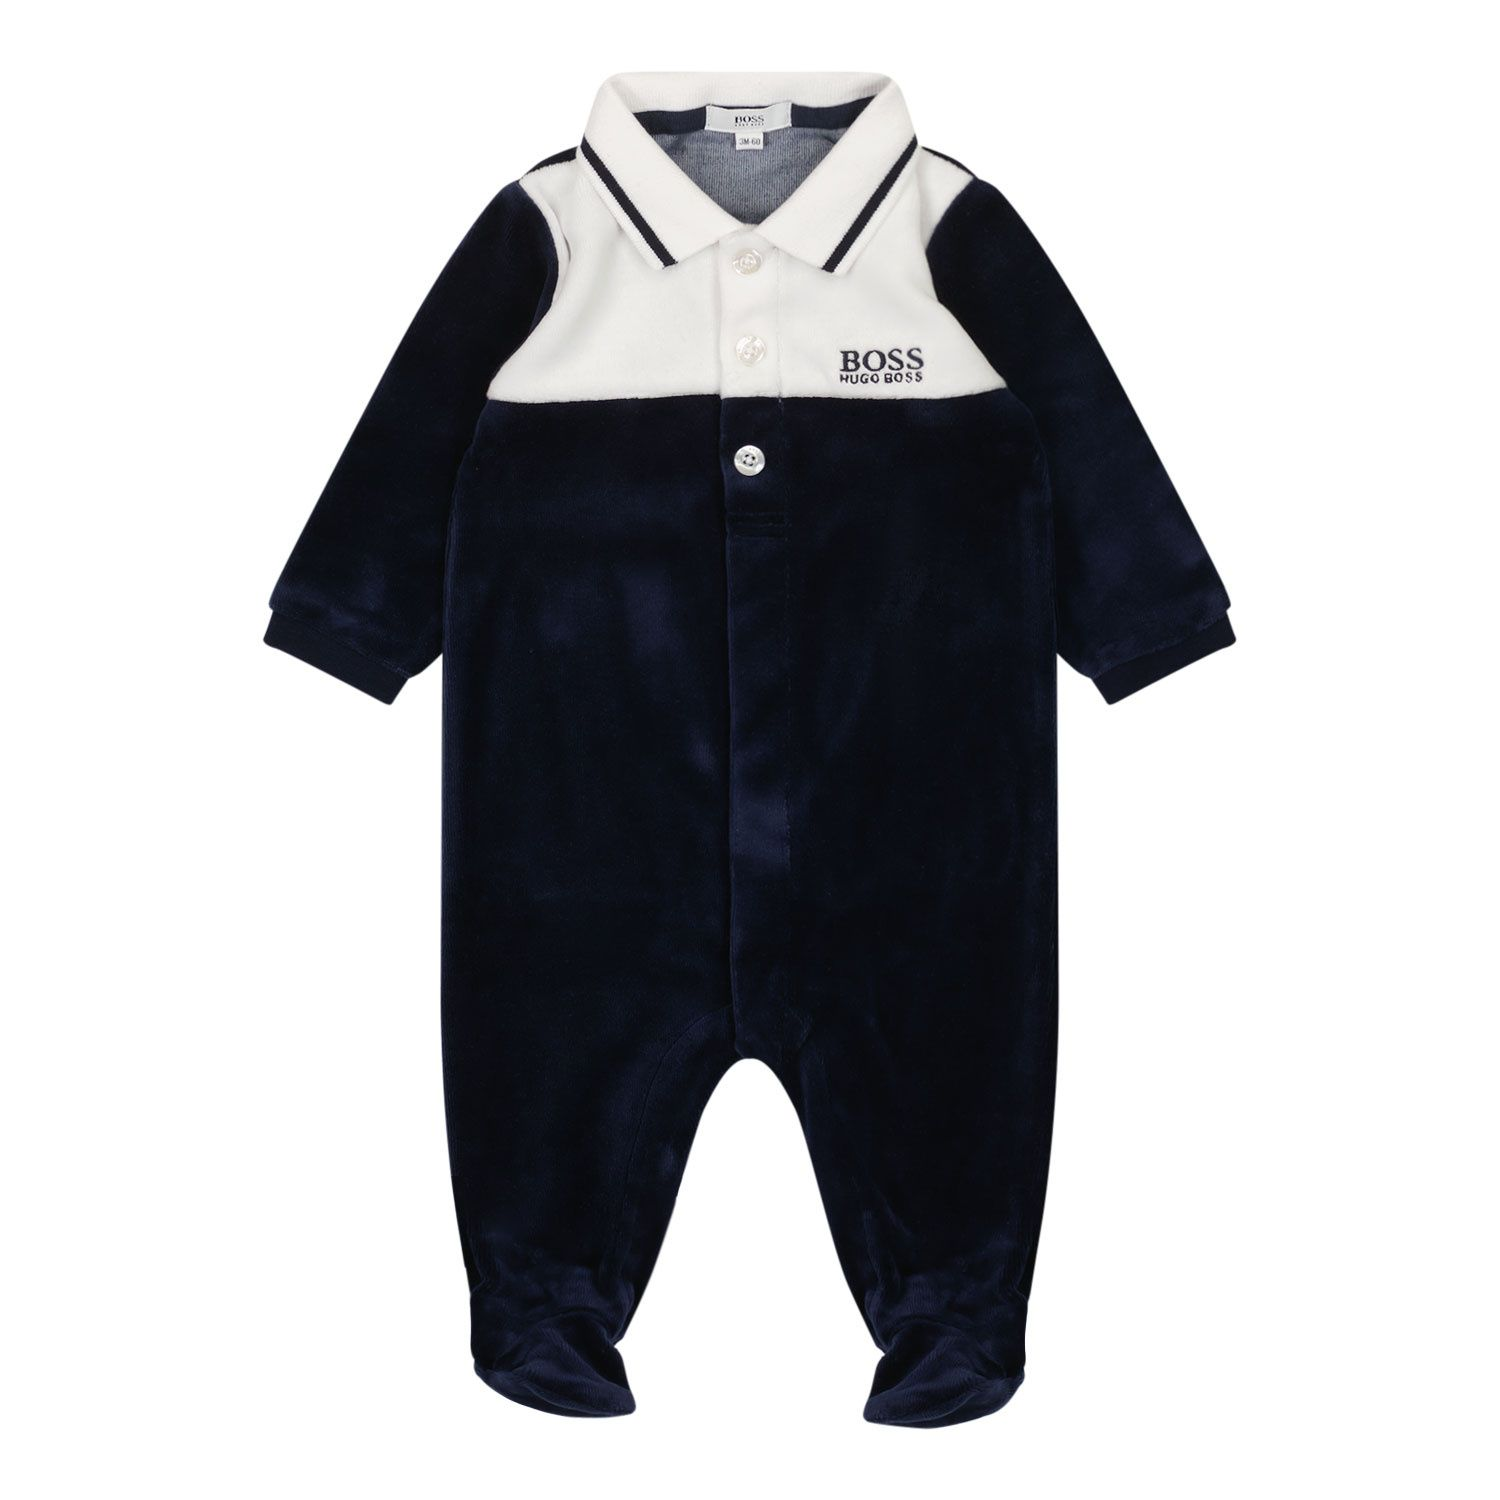 Picture of Boss J97179 baby playsuit navy